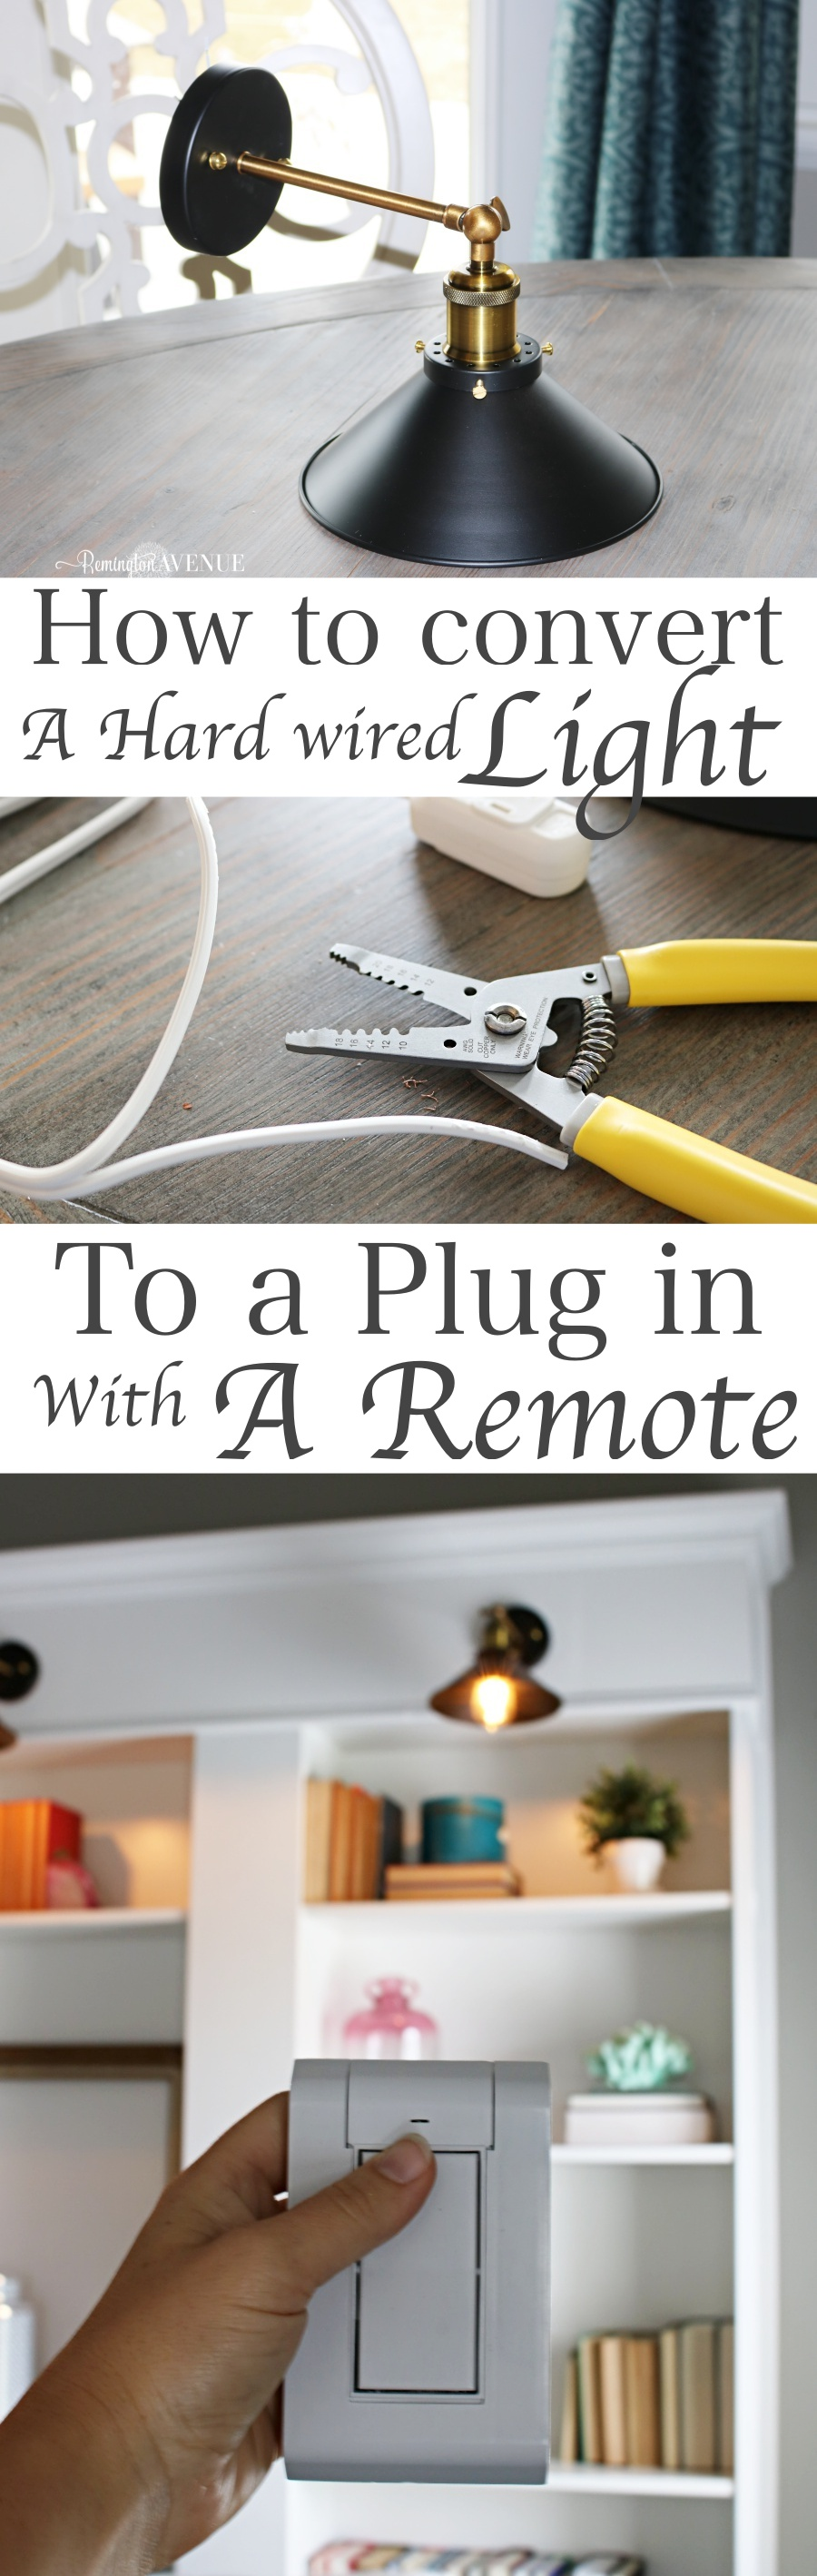 hight resolution of how to convert multiple hard wired light fixtures into a plug in with one switch